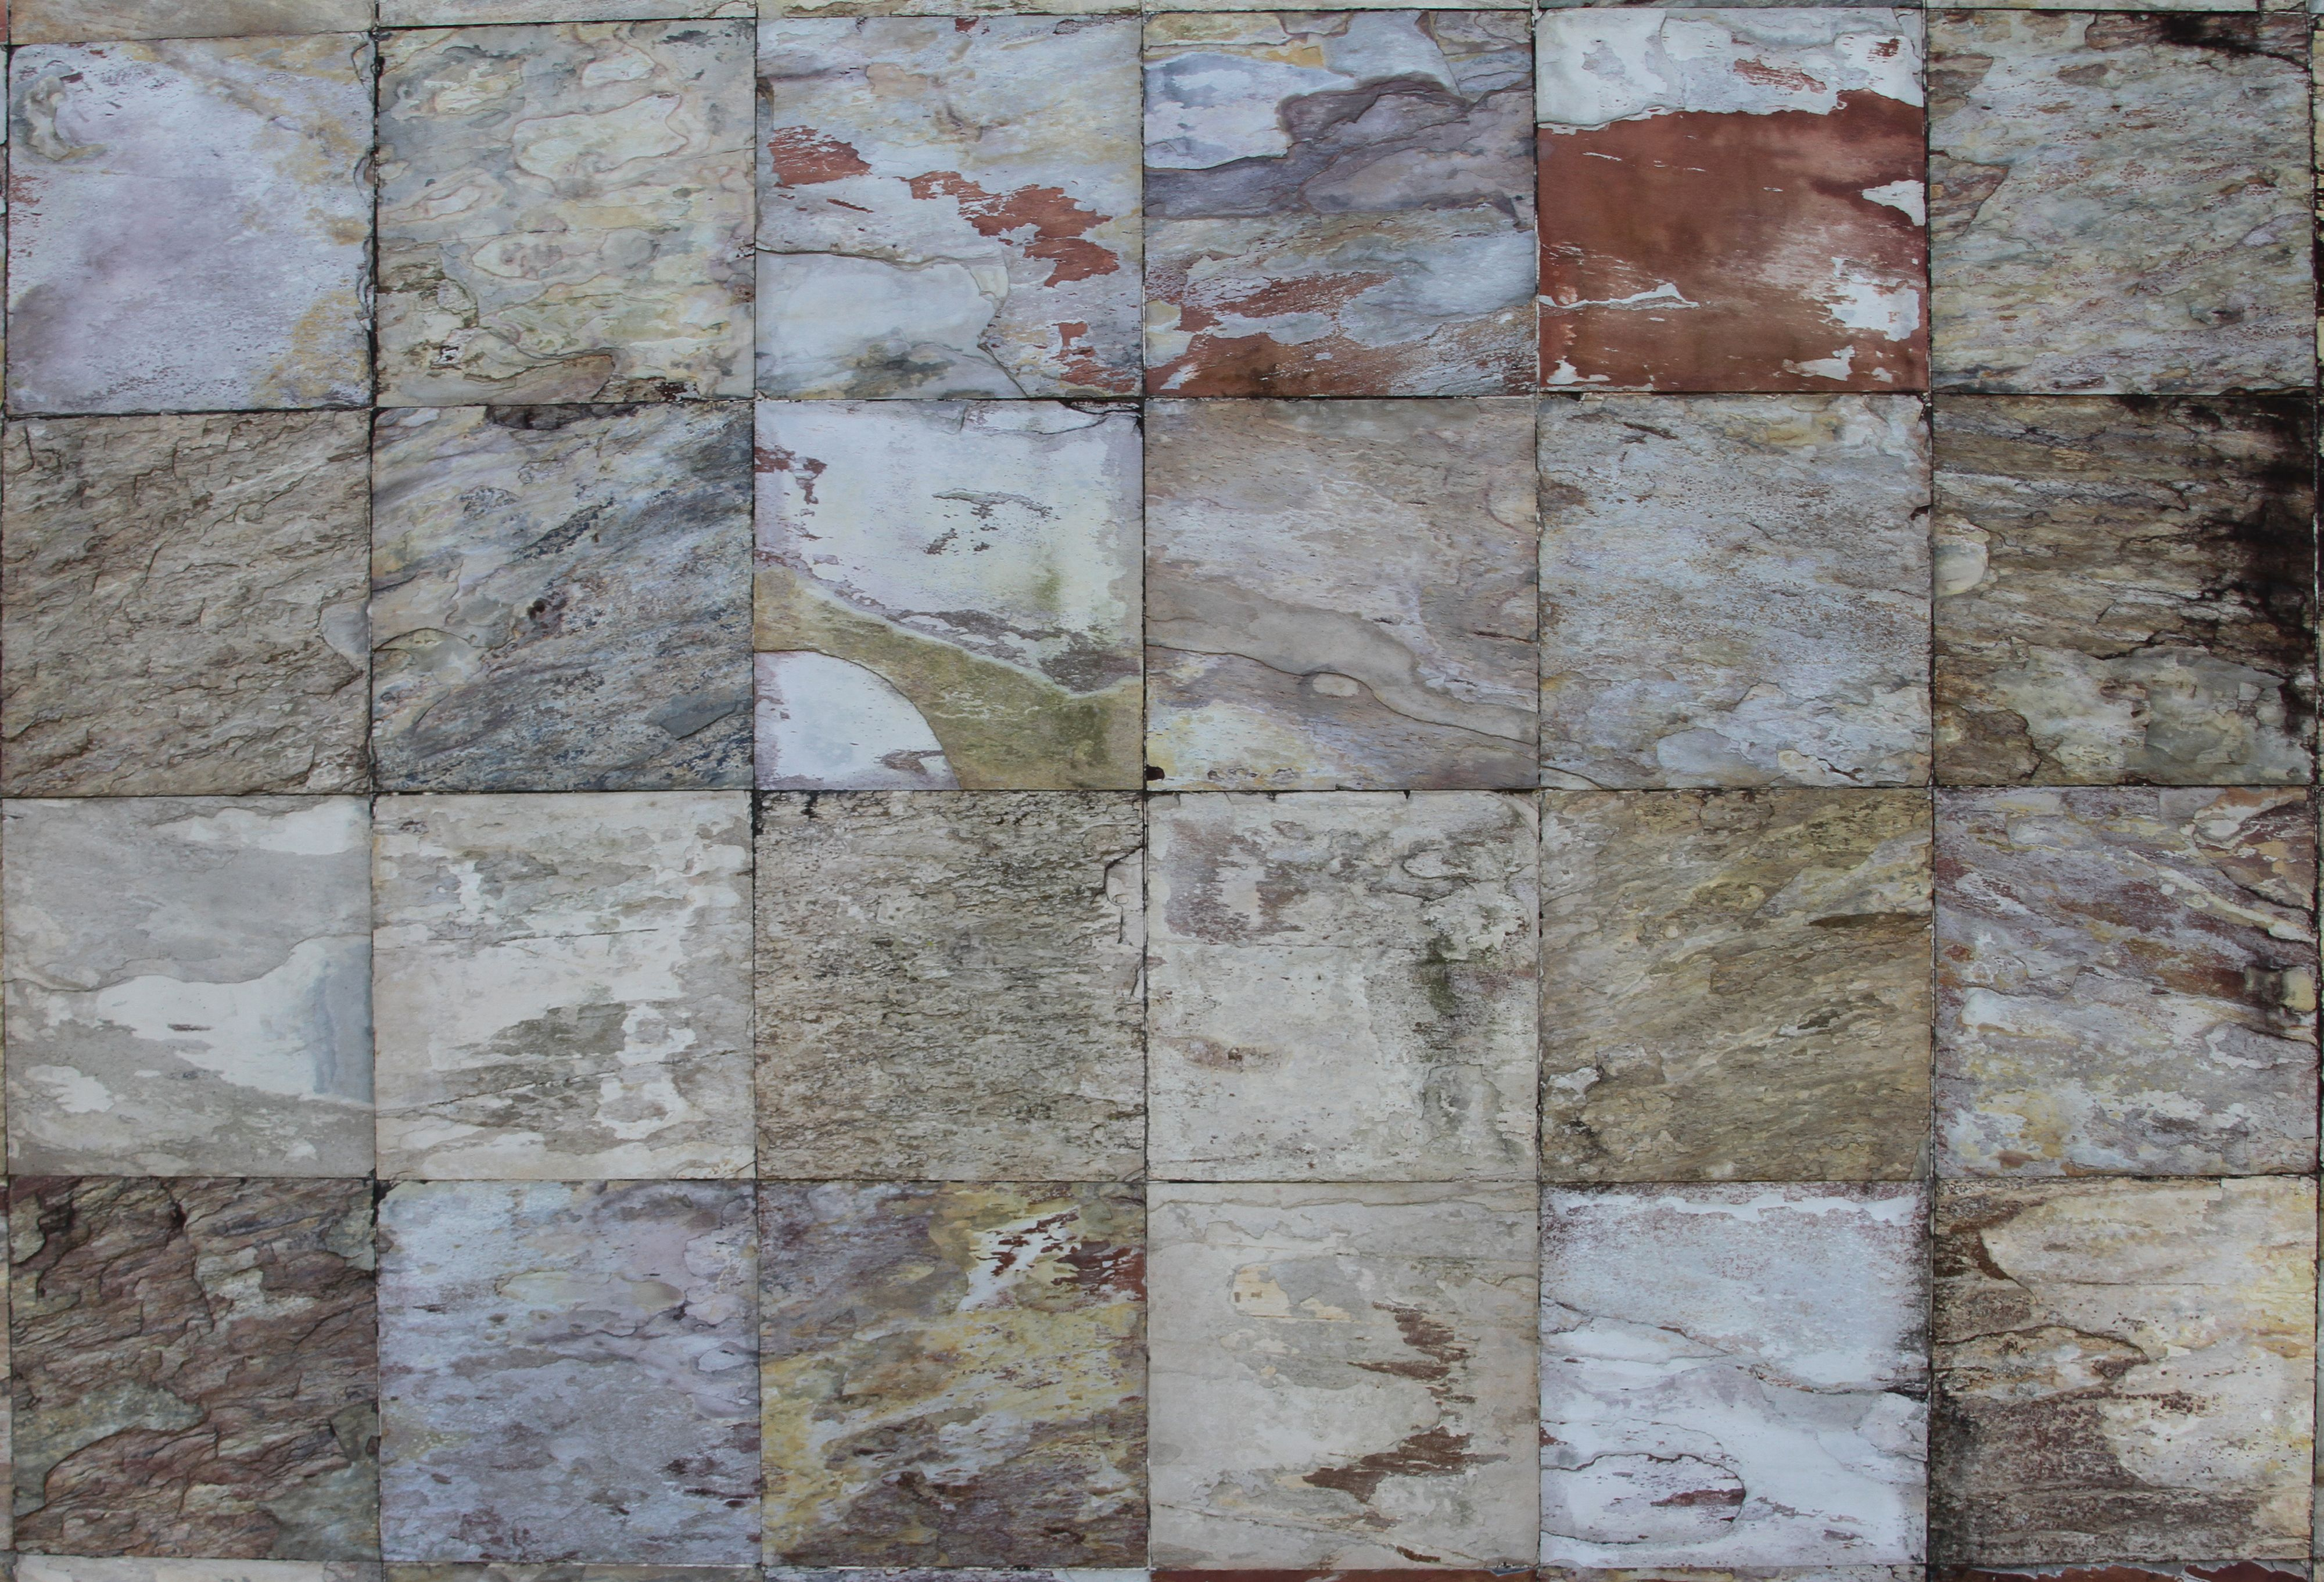 stone tile texture. High Resolution Colored Stone Tile Texture For Graphic Arts And Game Maps In Adobe Photoshop